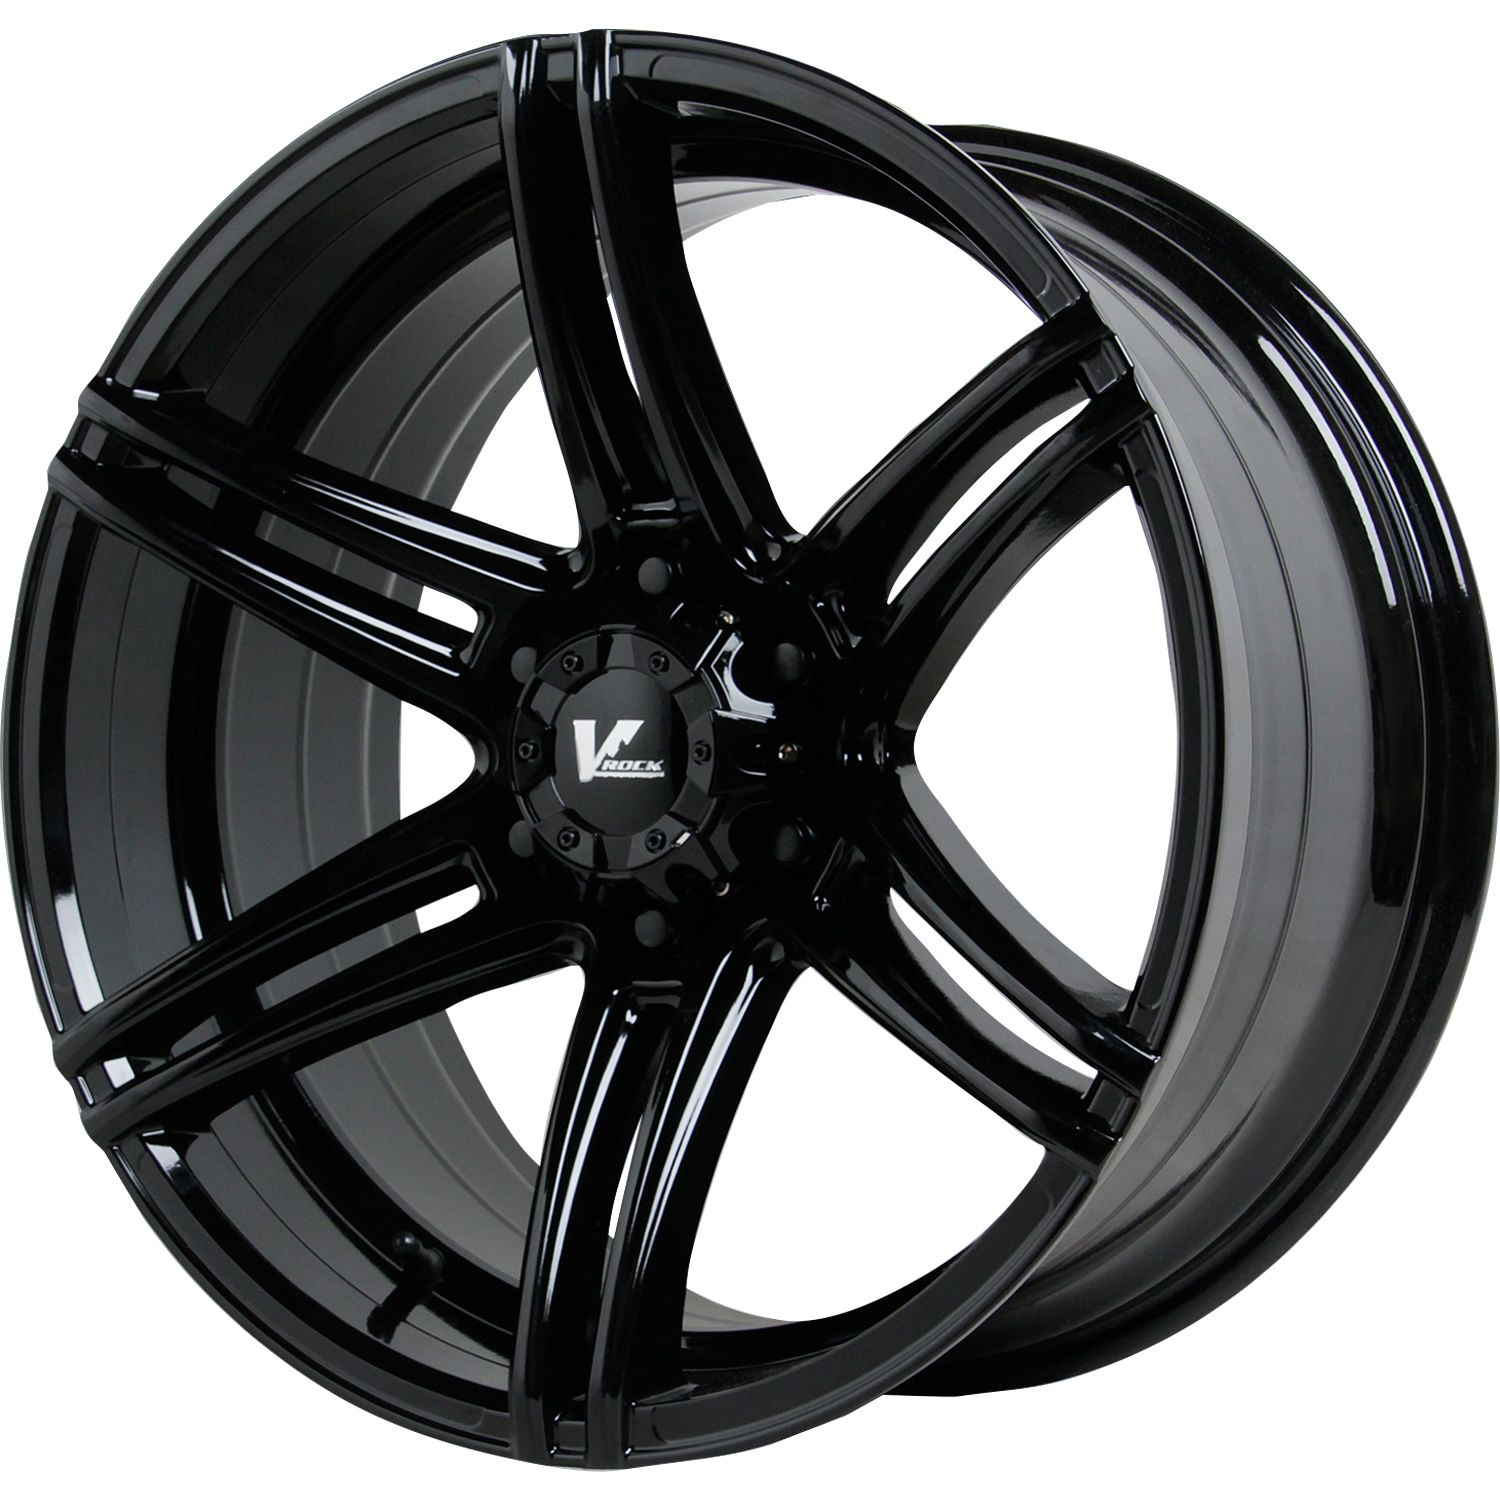 tires page any body views dodge rims their painted wheels dart forum size name mb